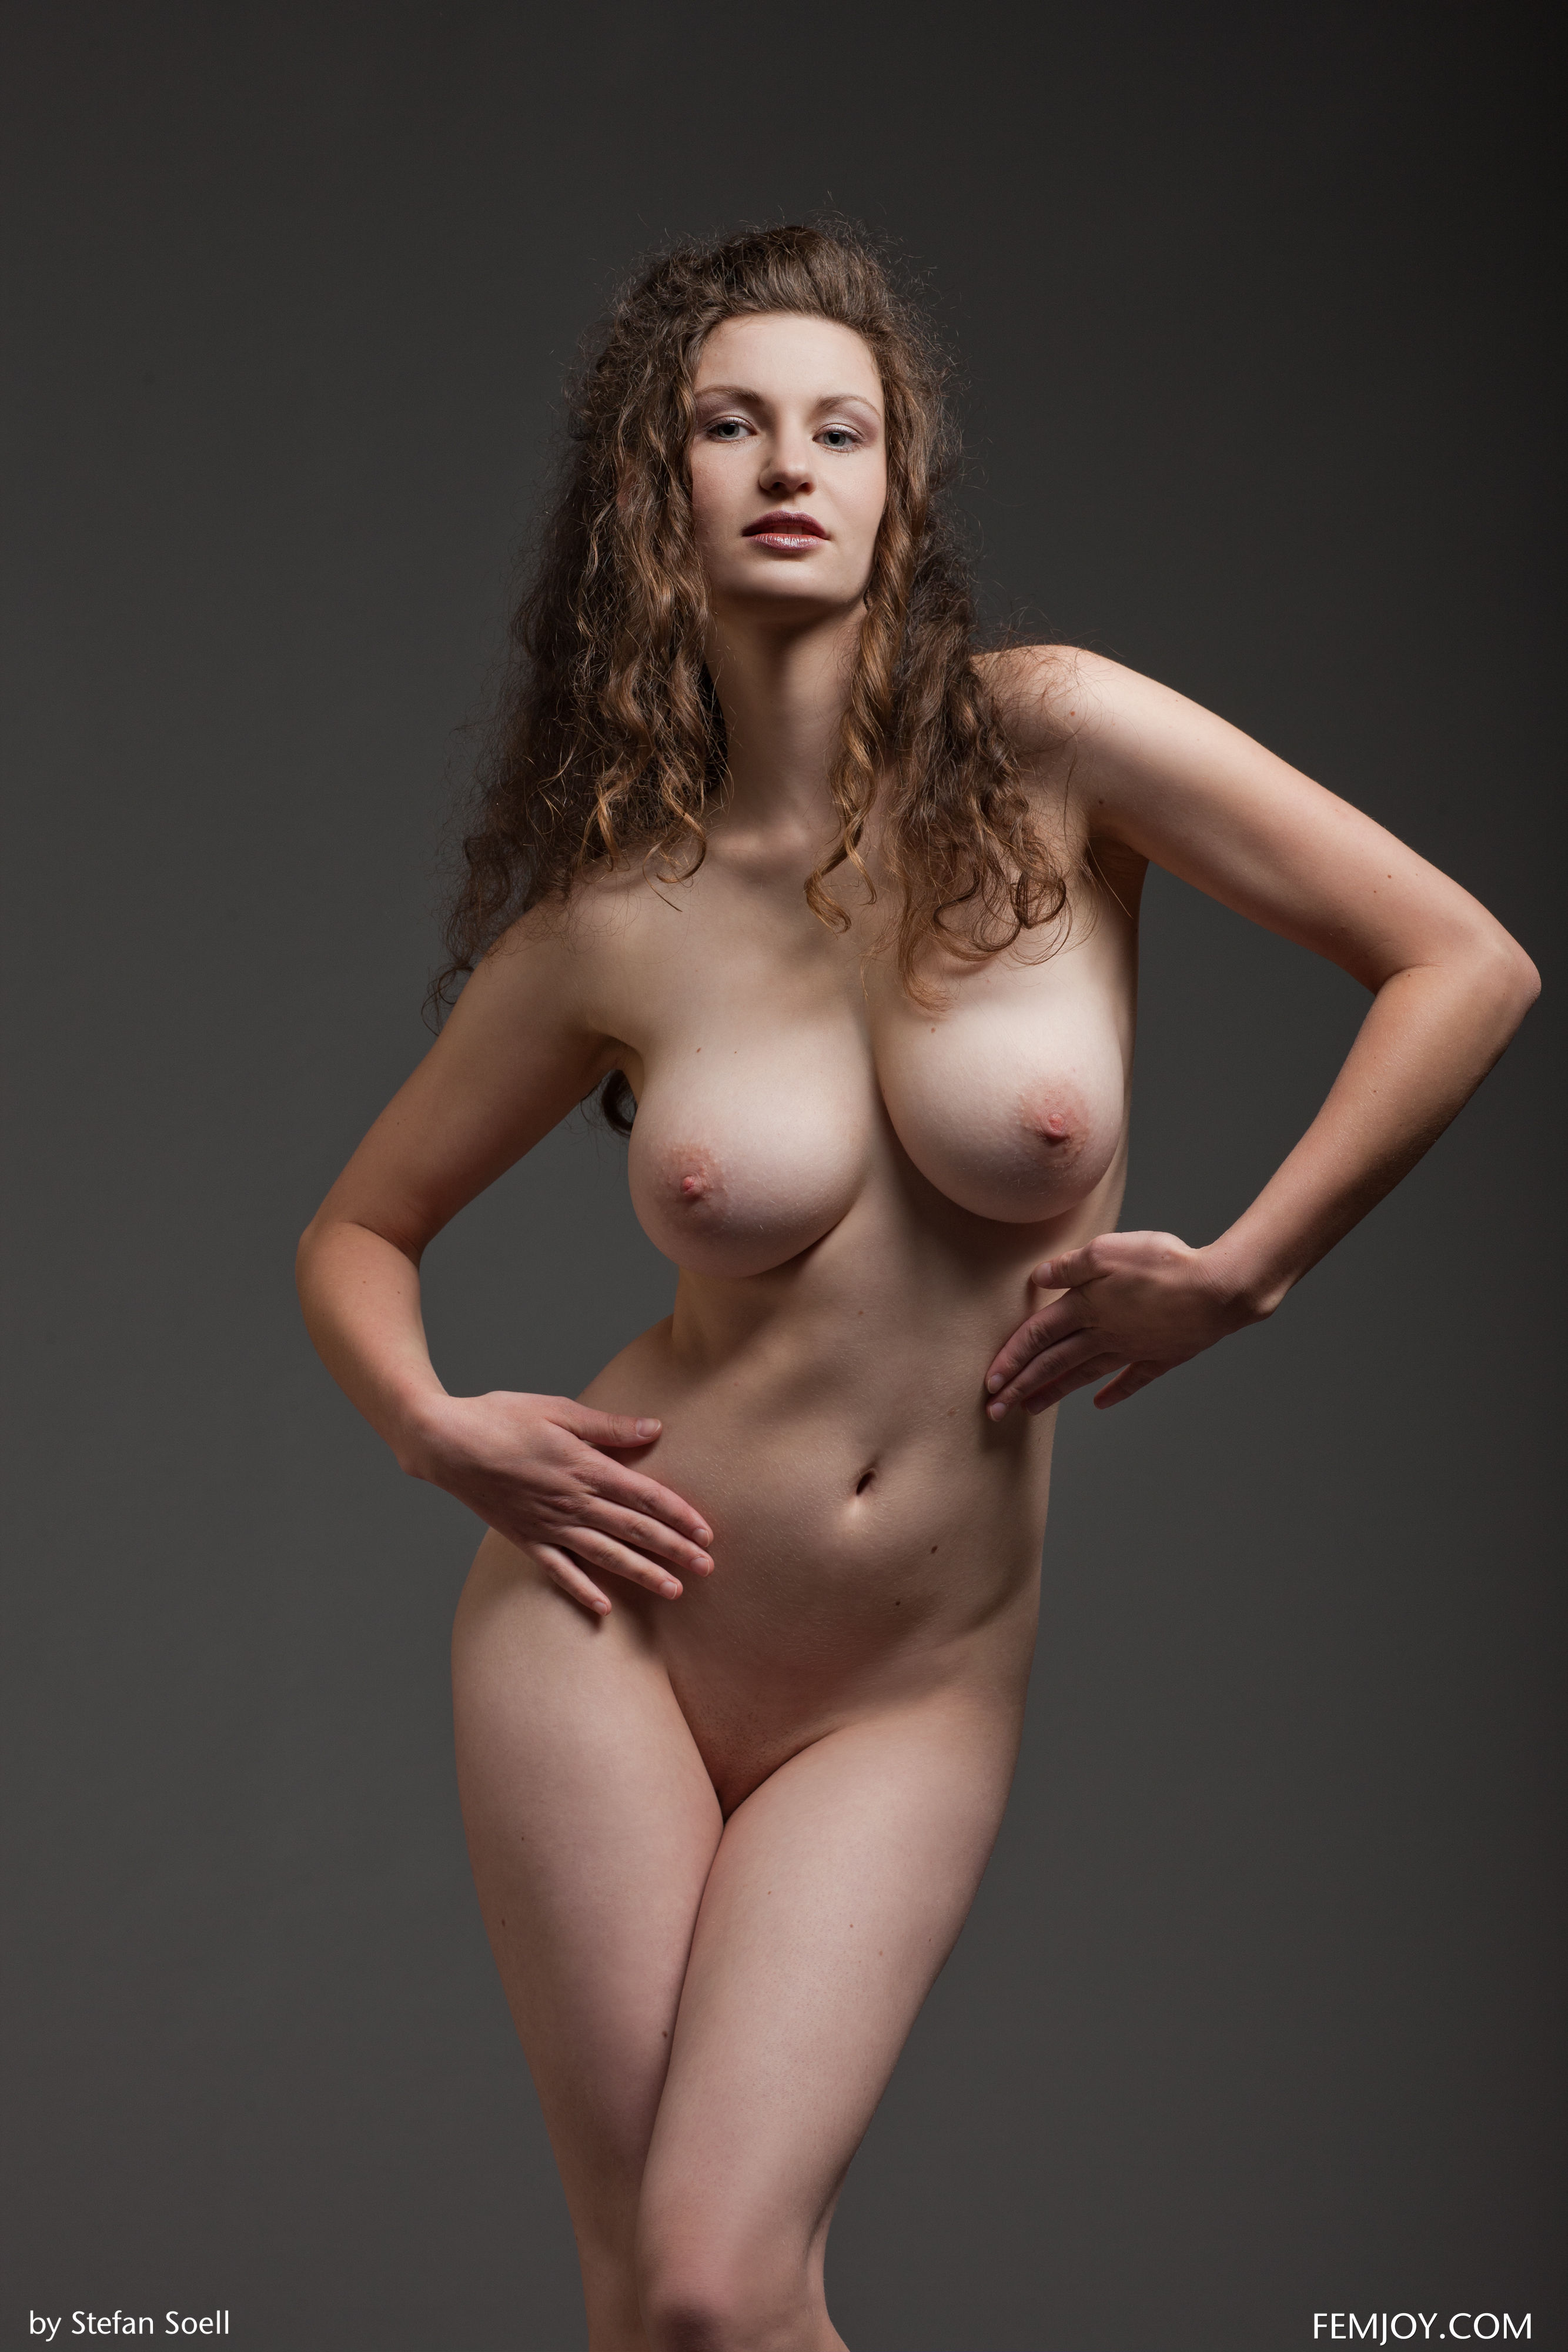 Sexy Girls Getting Undressed